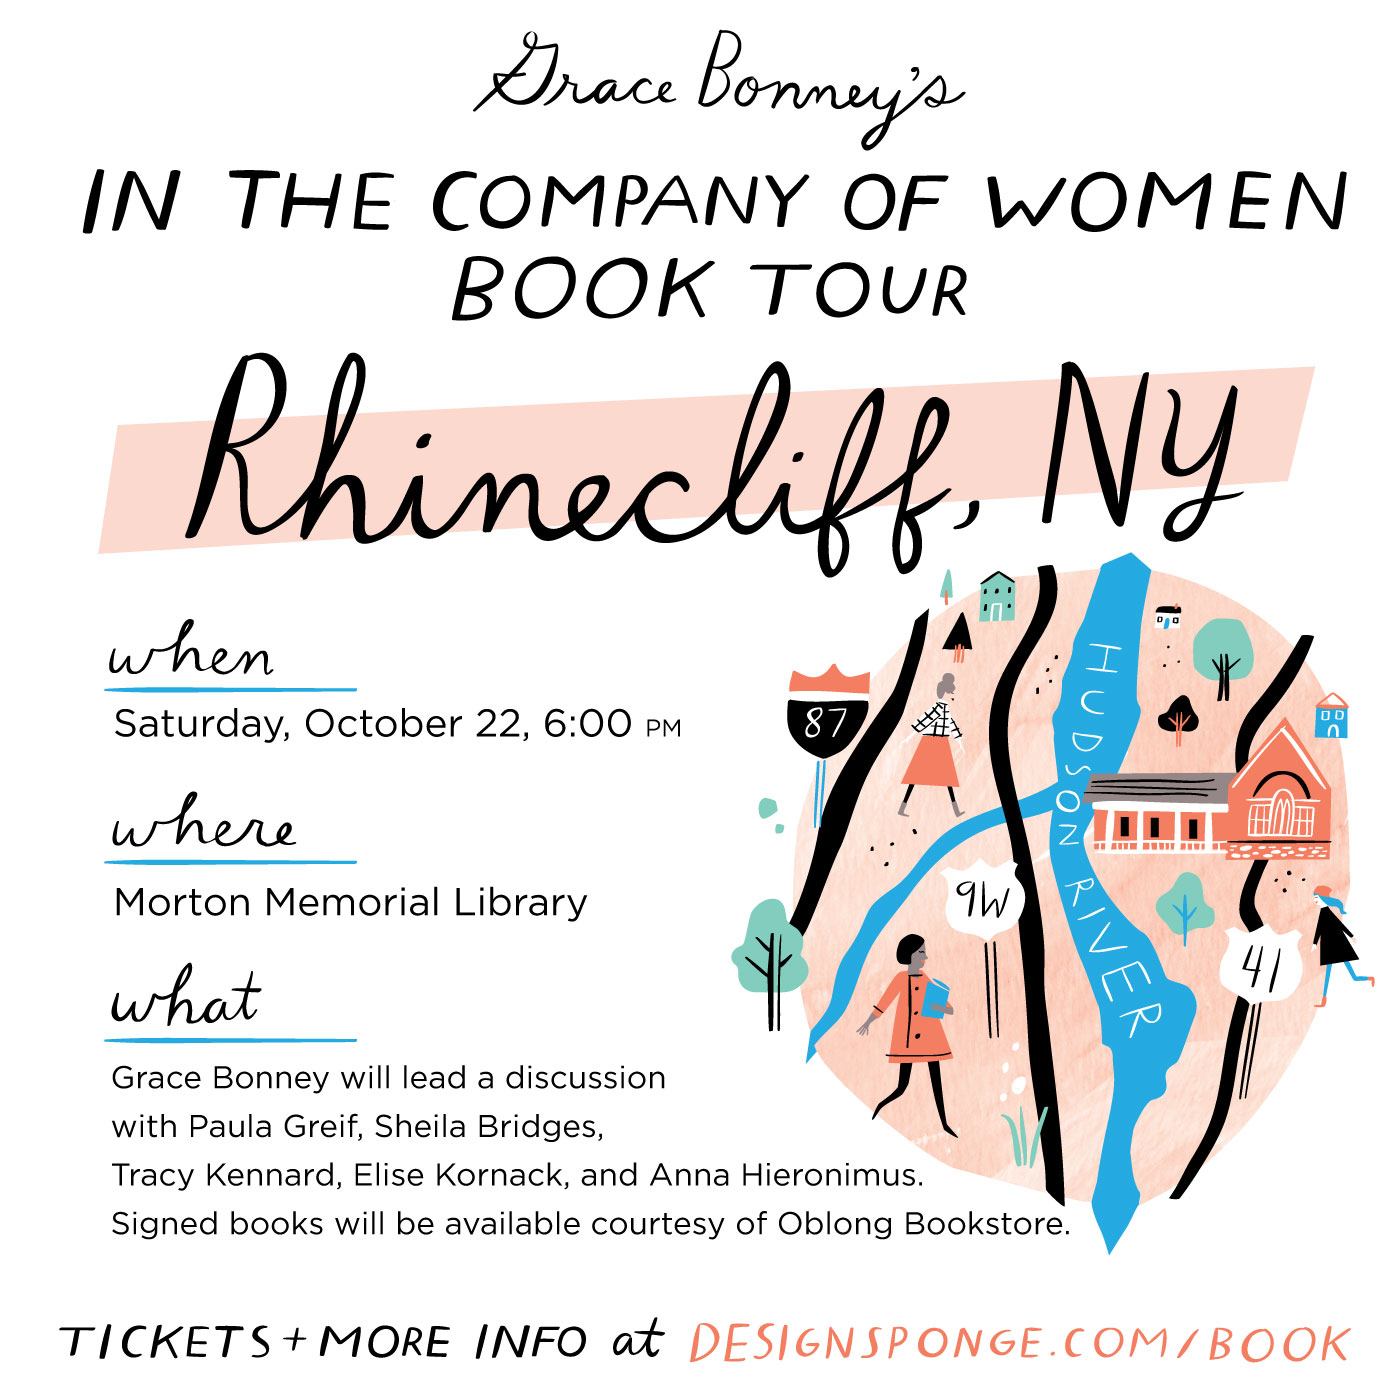 itcow_booktour_promos_cities_rhinecliff